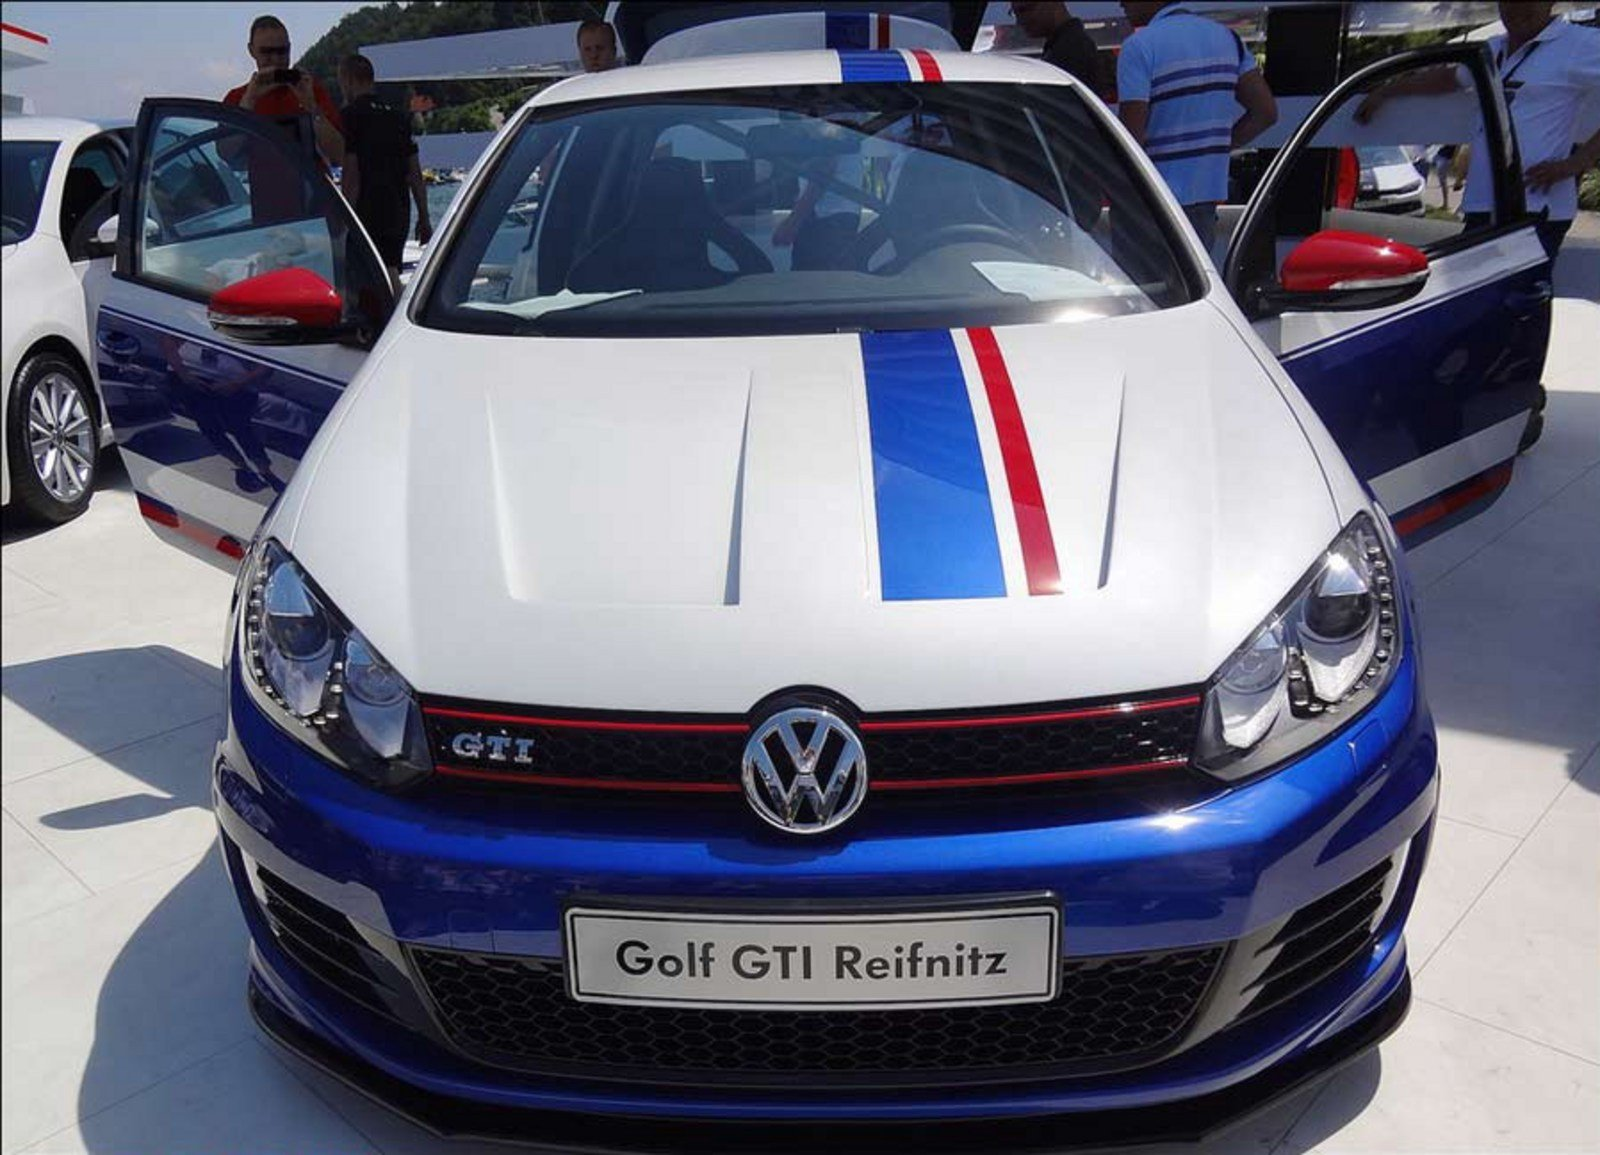 2011 volkswagen golf gti reifnitz review top speed. Black Bedroom Furniture Sets. Home Design Ideas